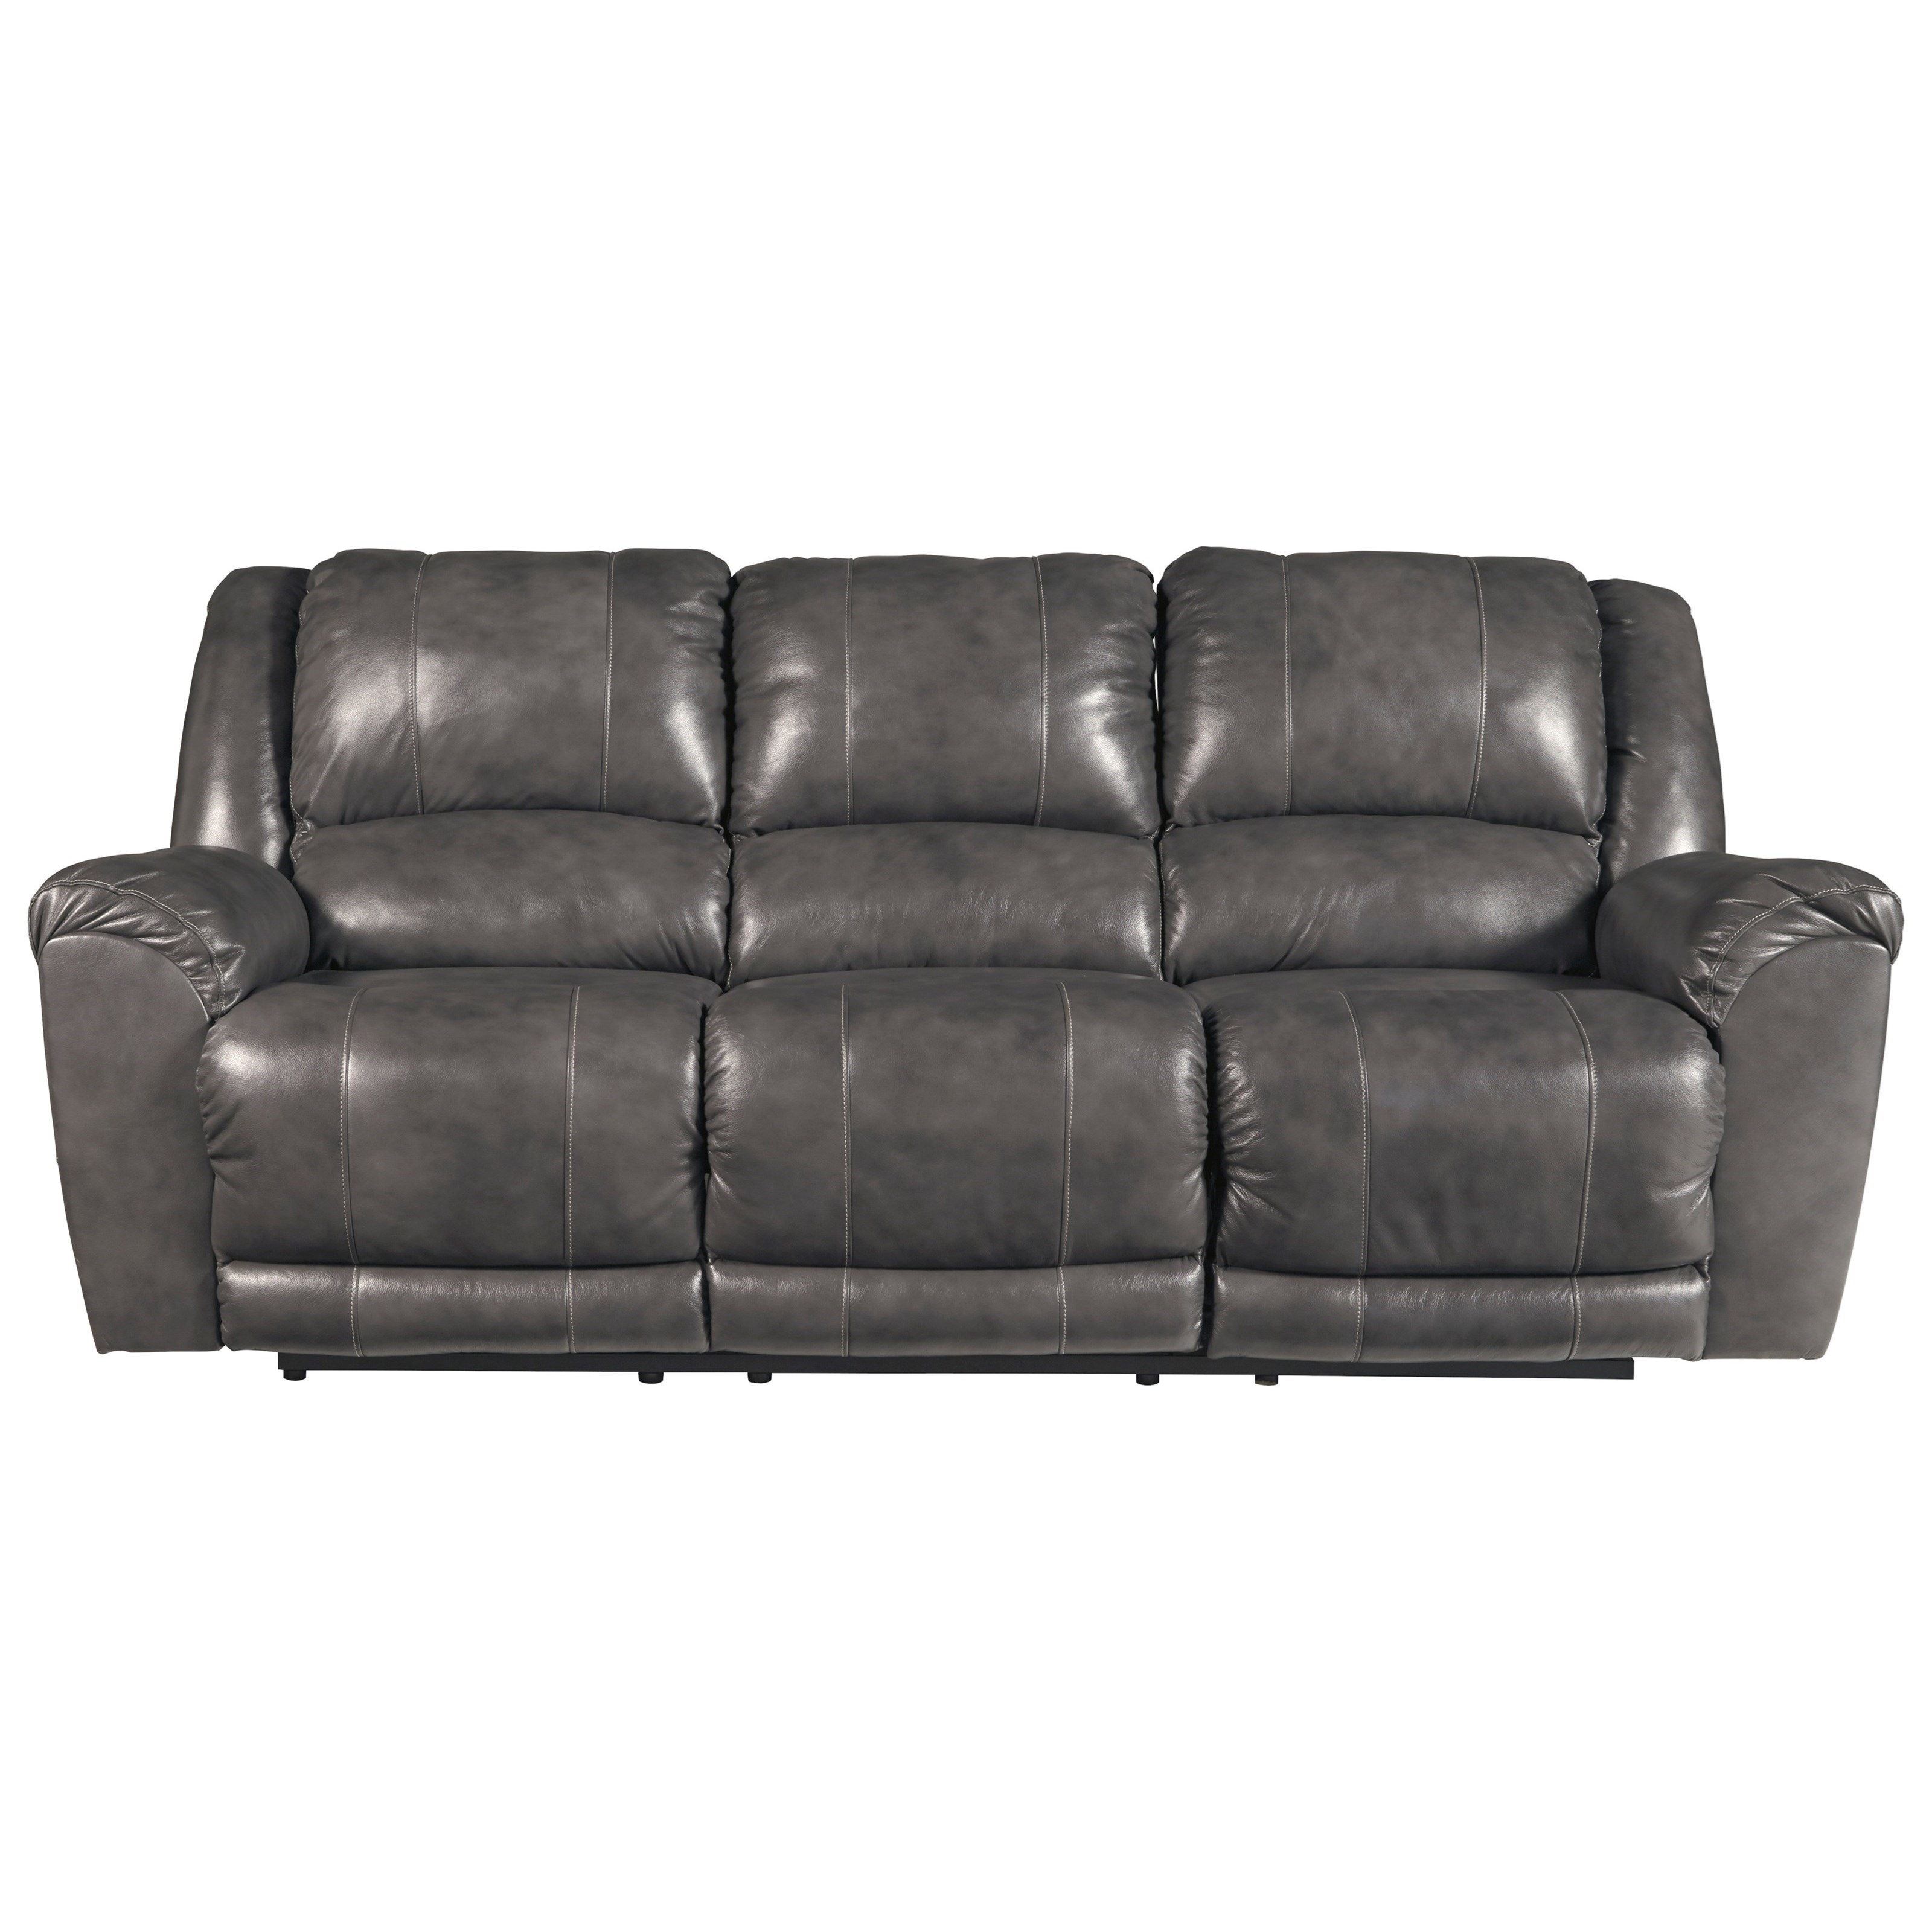 Signature Design by Ashley Persiphone Reclining Power Sofa - Item Number: 6070187